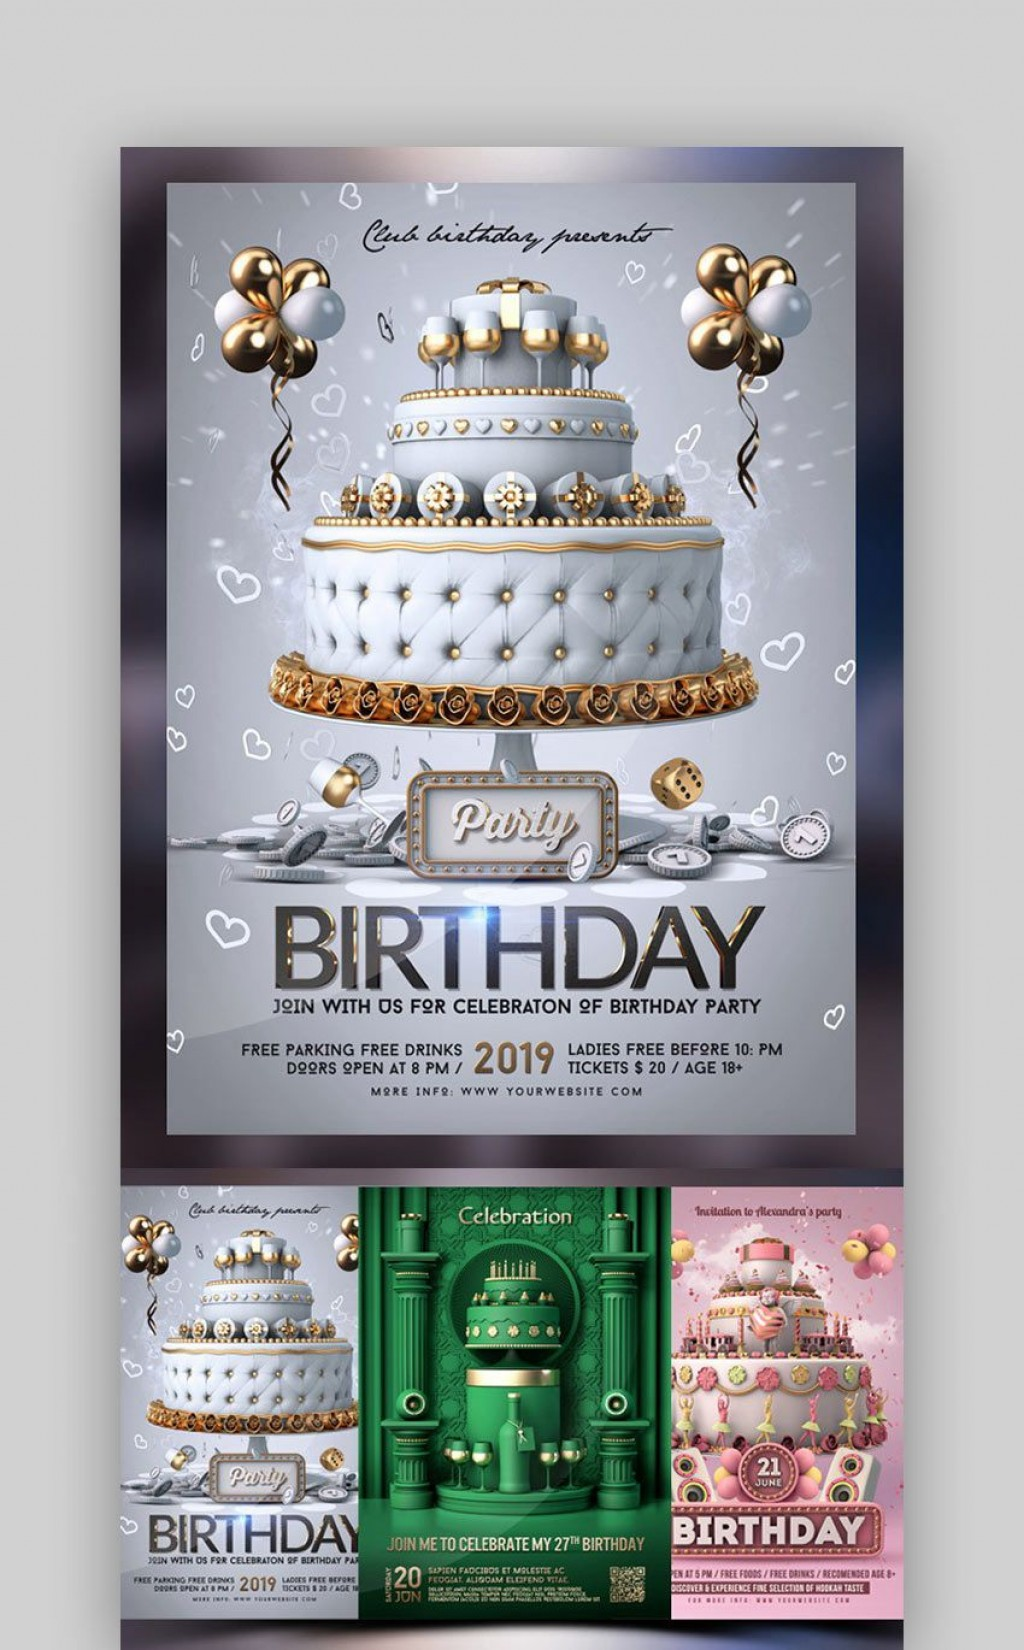 003 Unique Birthday Party Invitation Flyer Template Free Download Image Large